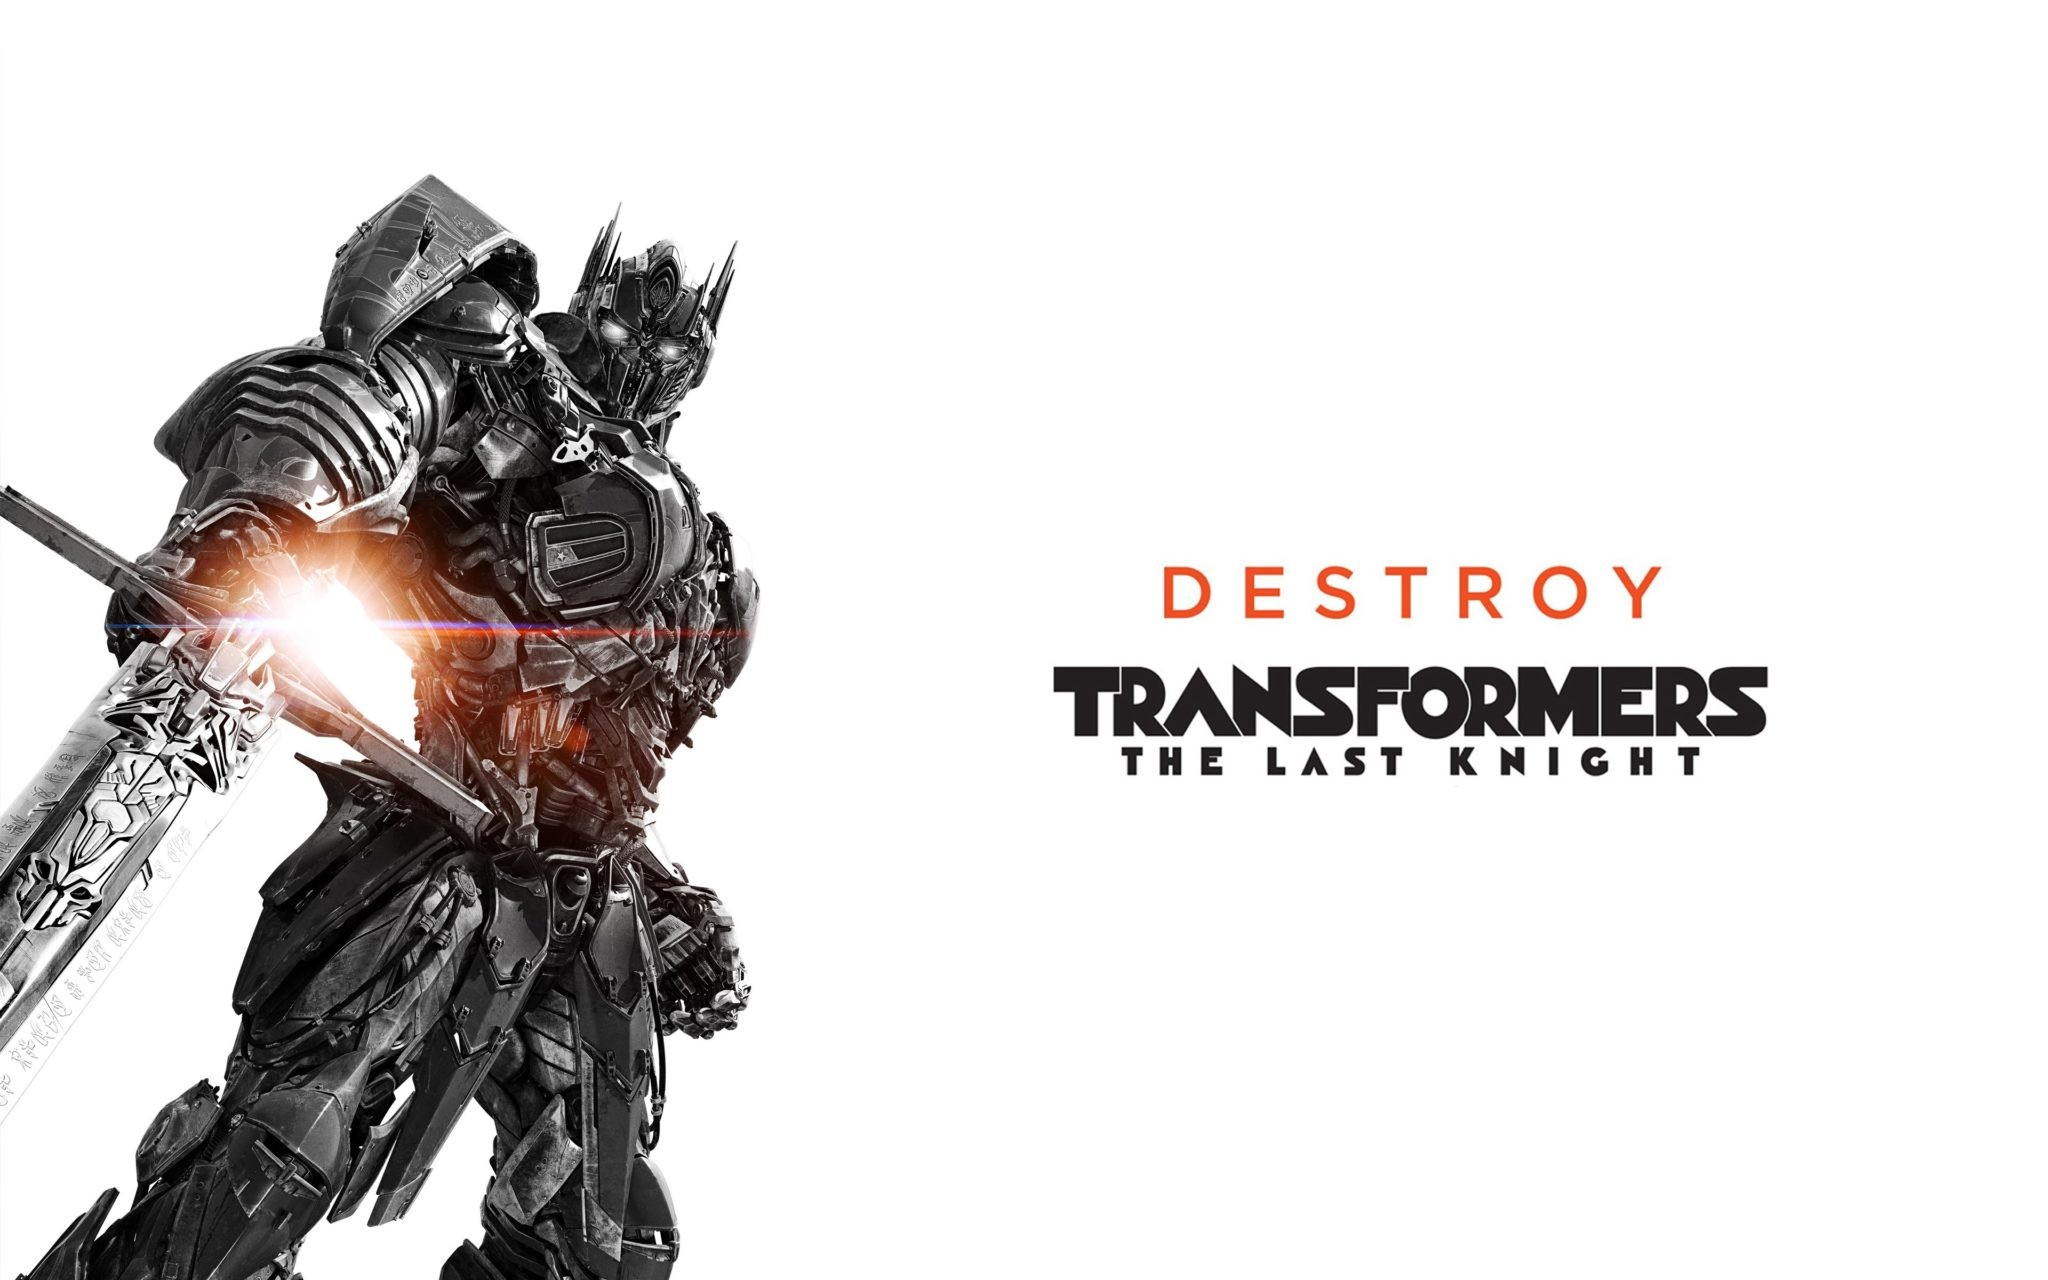 Transformers 5 Hd Wallpapers 1080p Download Transformers The Last Knight Wallpapers 67 Images